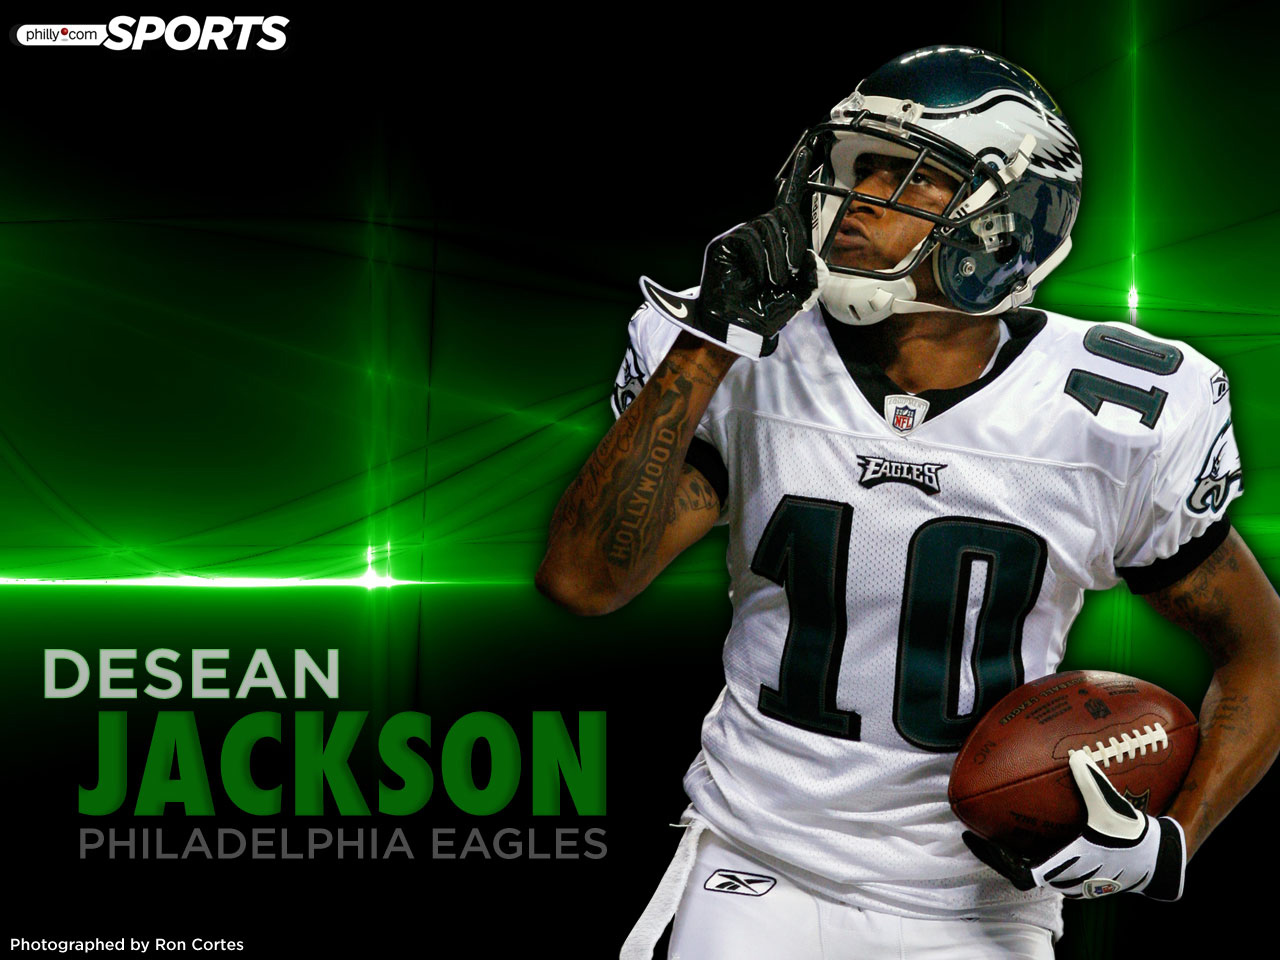 1280x960 DeseanJackson DeSean Jackson Chip Kelly Era